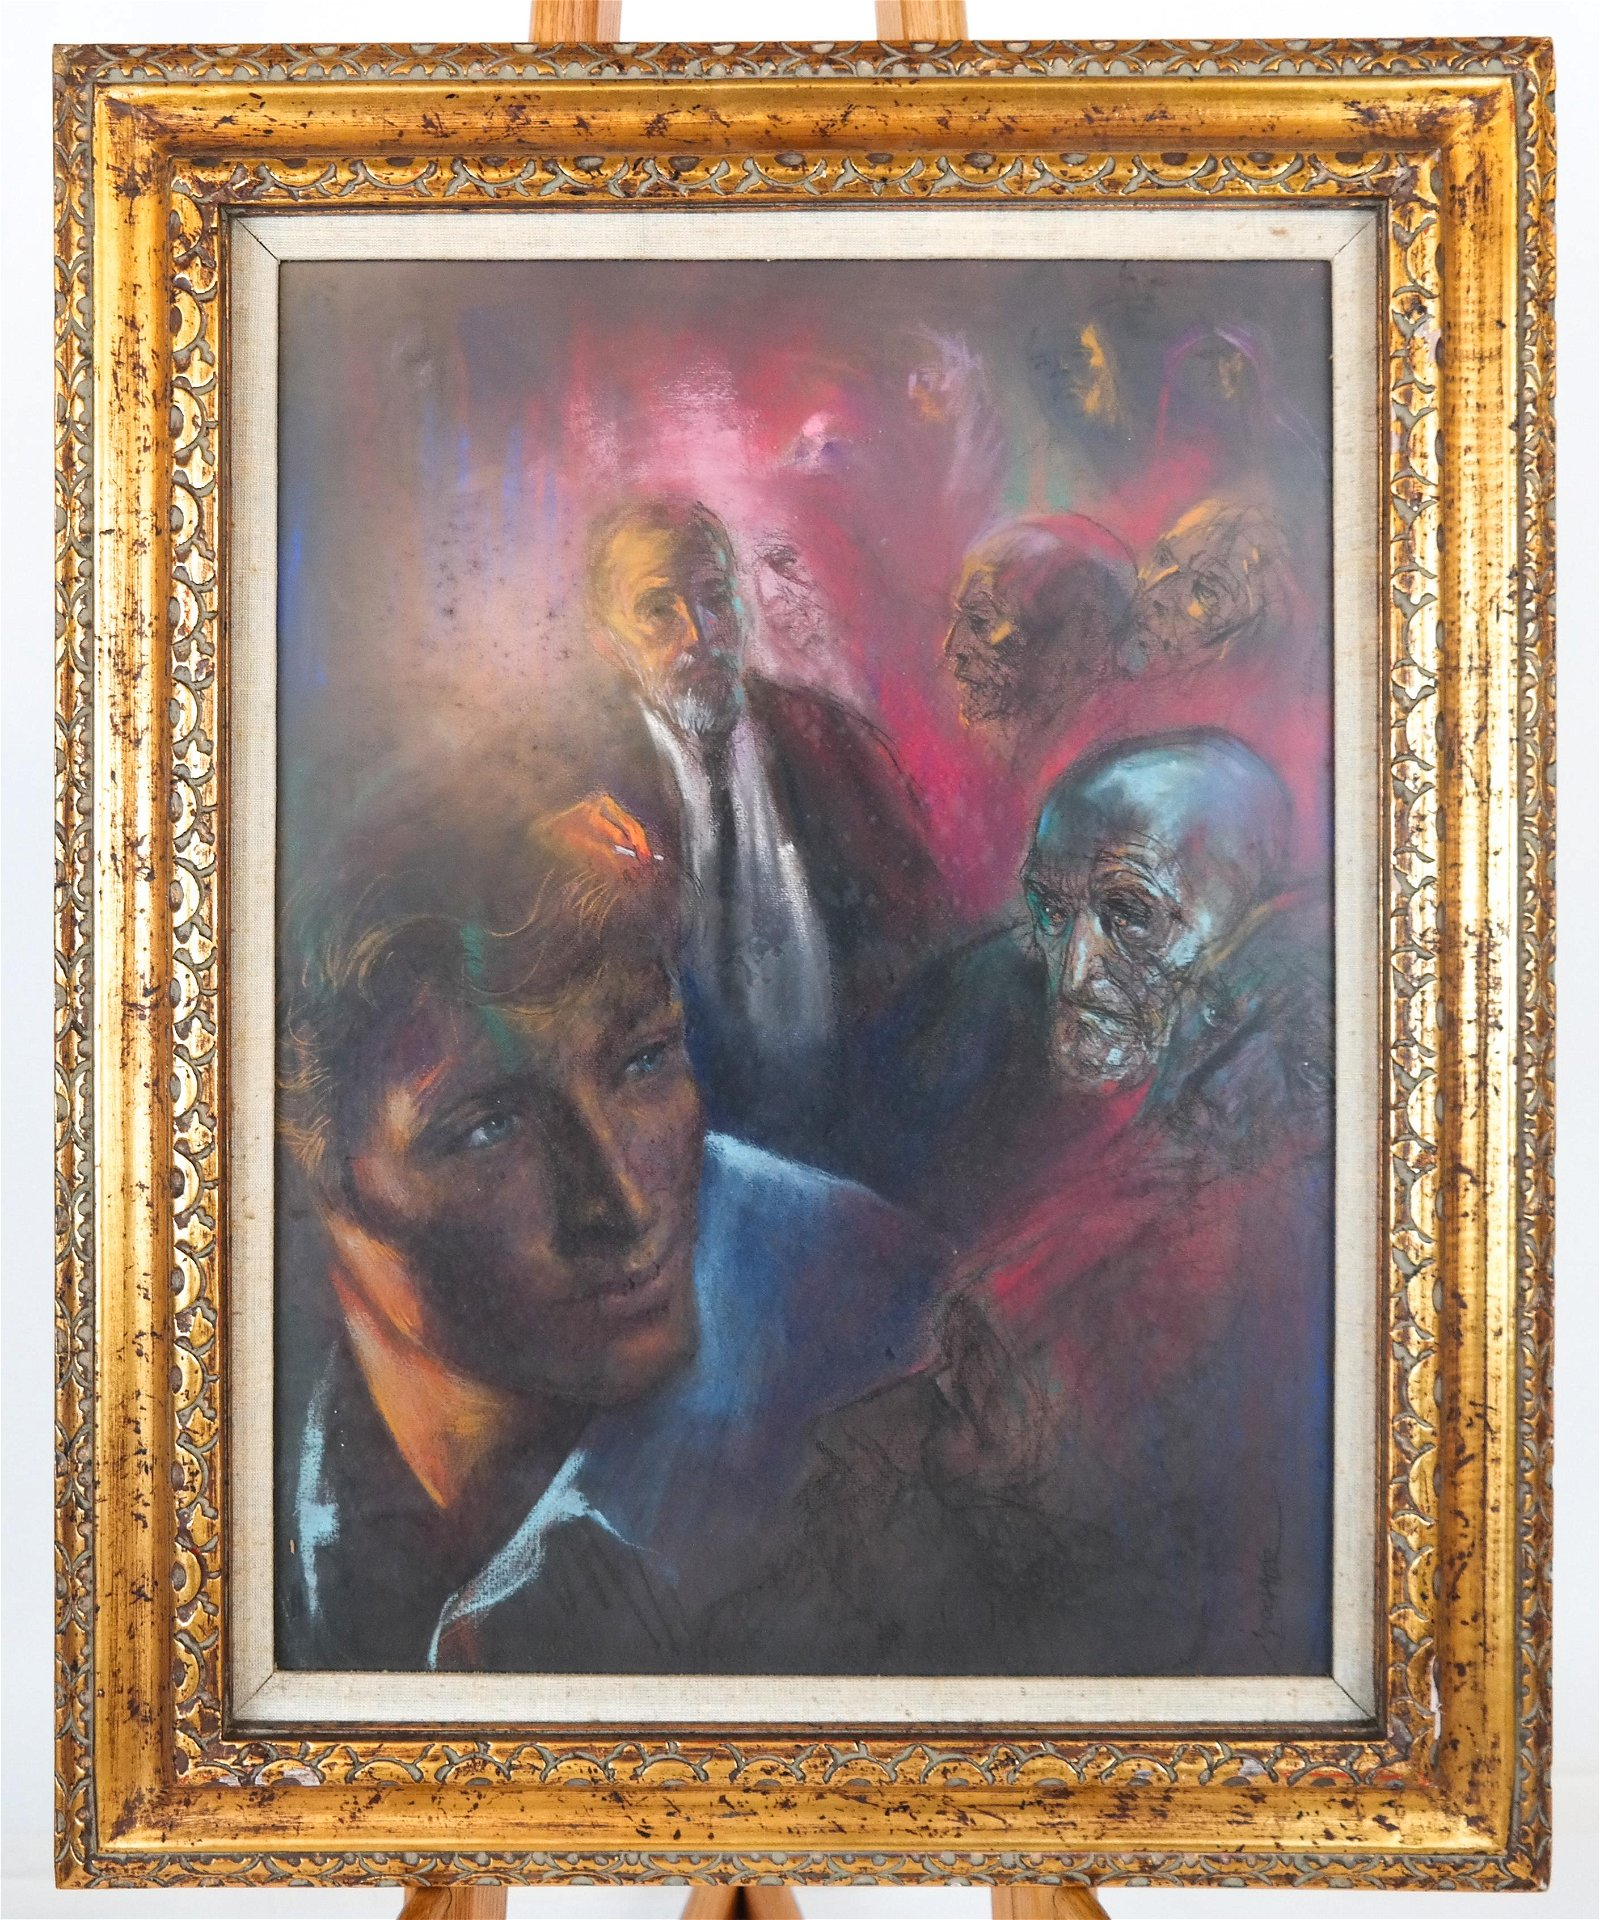 Irv DOCKTOR: Figures and Faces Studies - Pastel